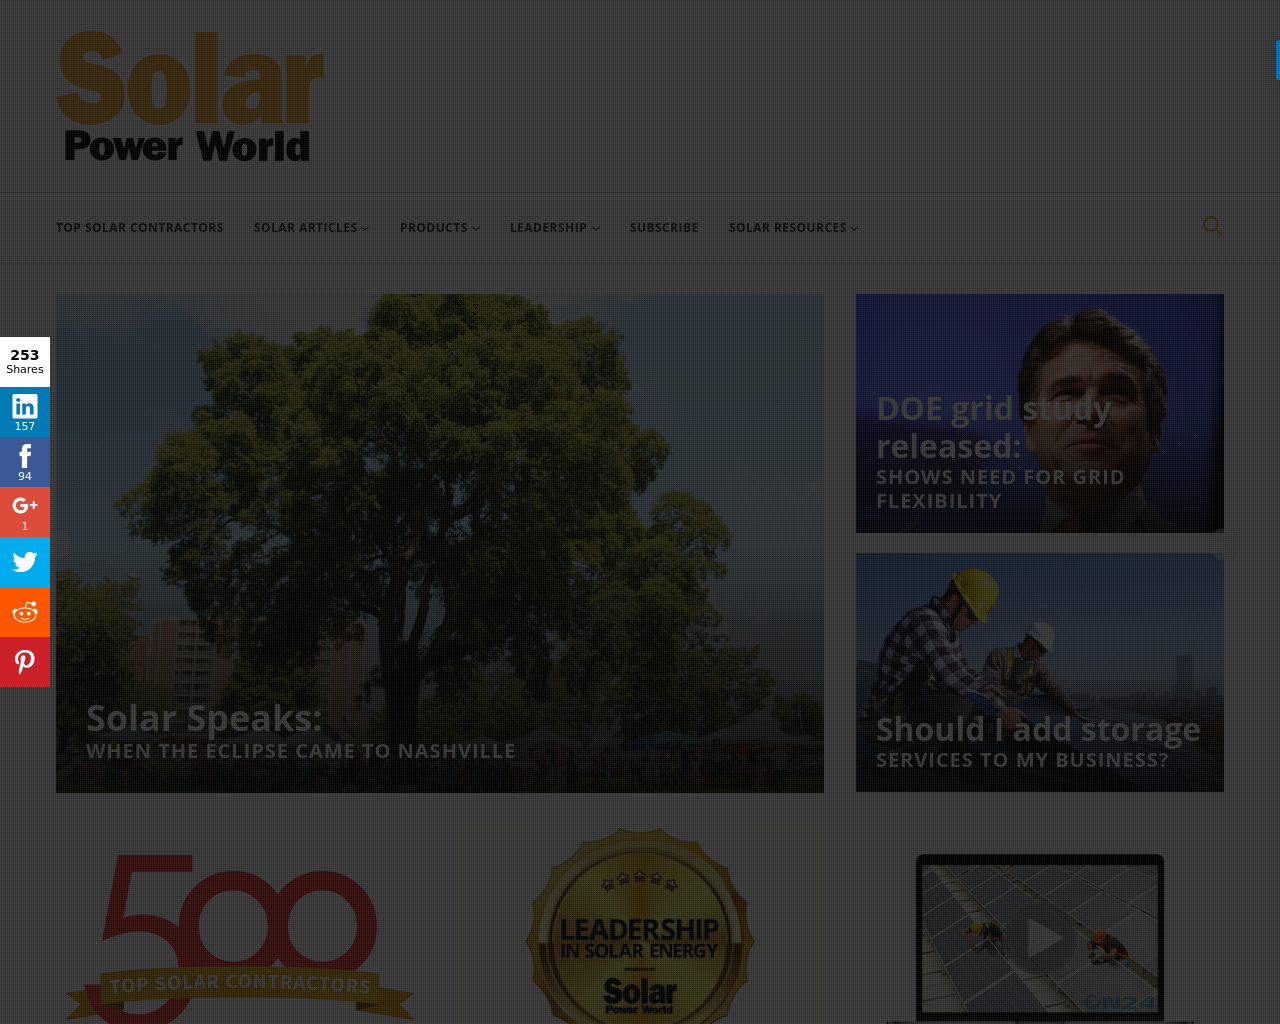 Solar-Power-World-Advertising-Reviews-Pricing